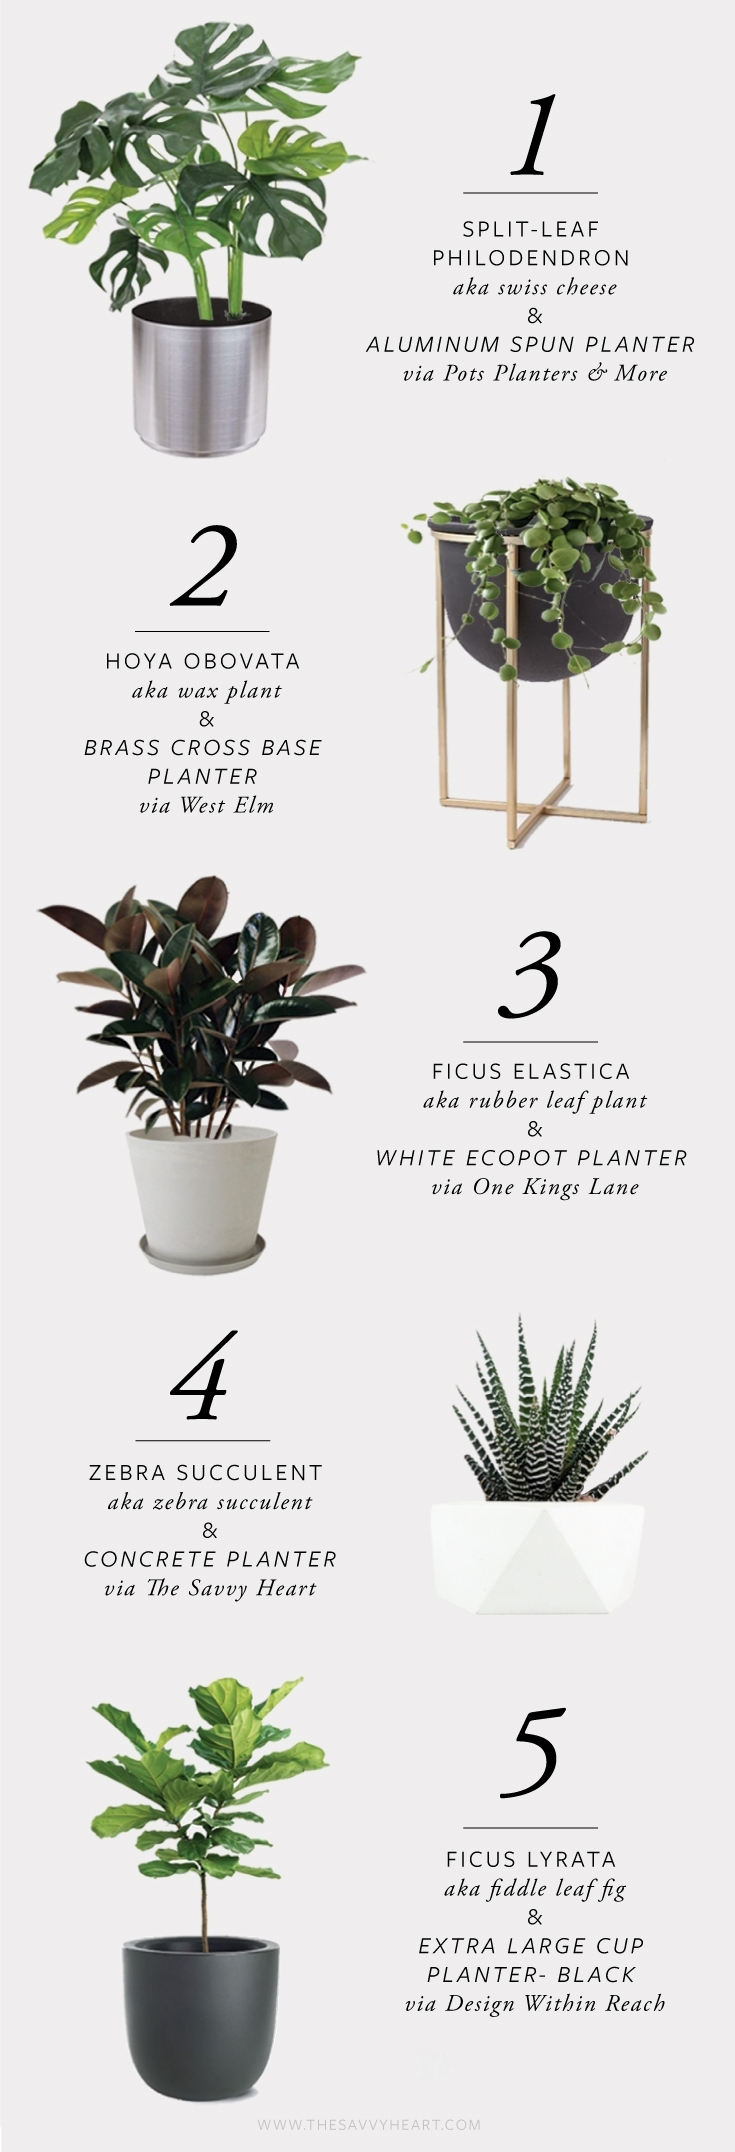 5-stylish-and-modern-house-plant-and-planter-combinations-by-the-savvy-heart.jpg